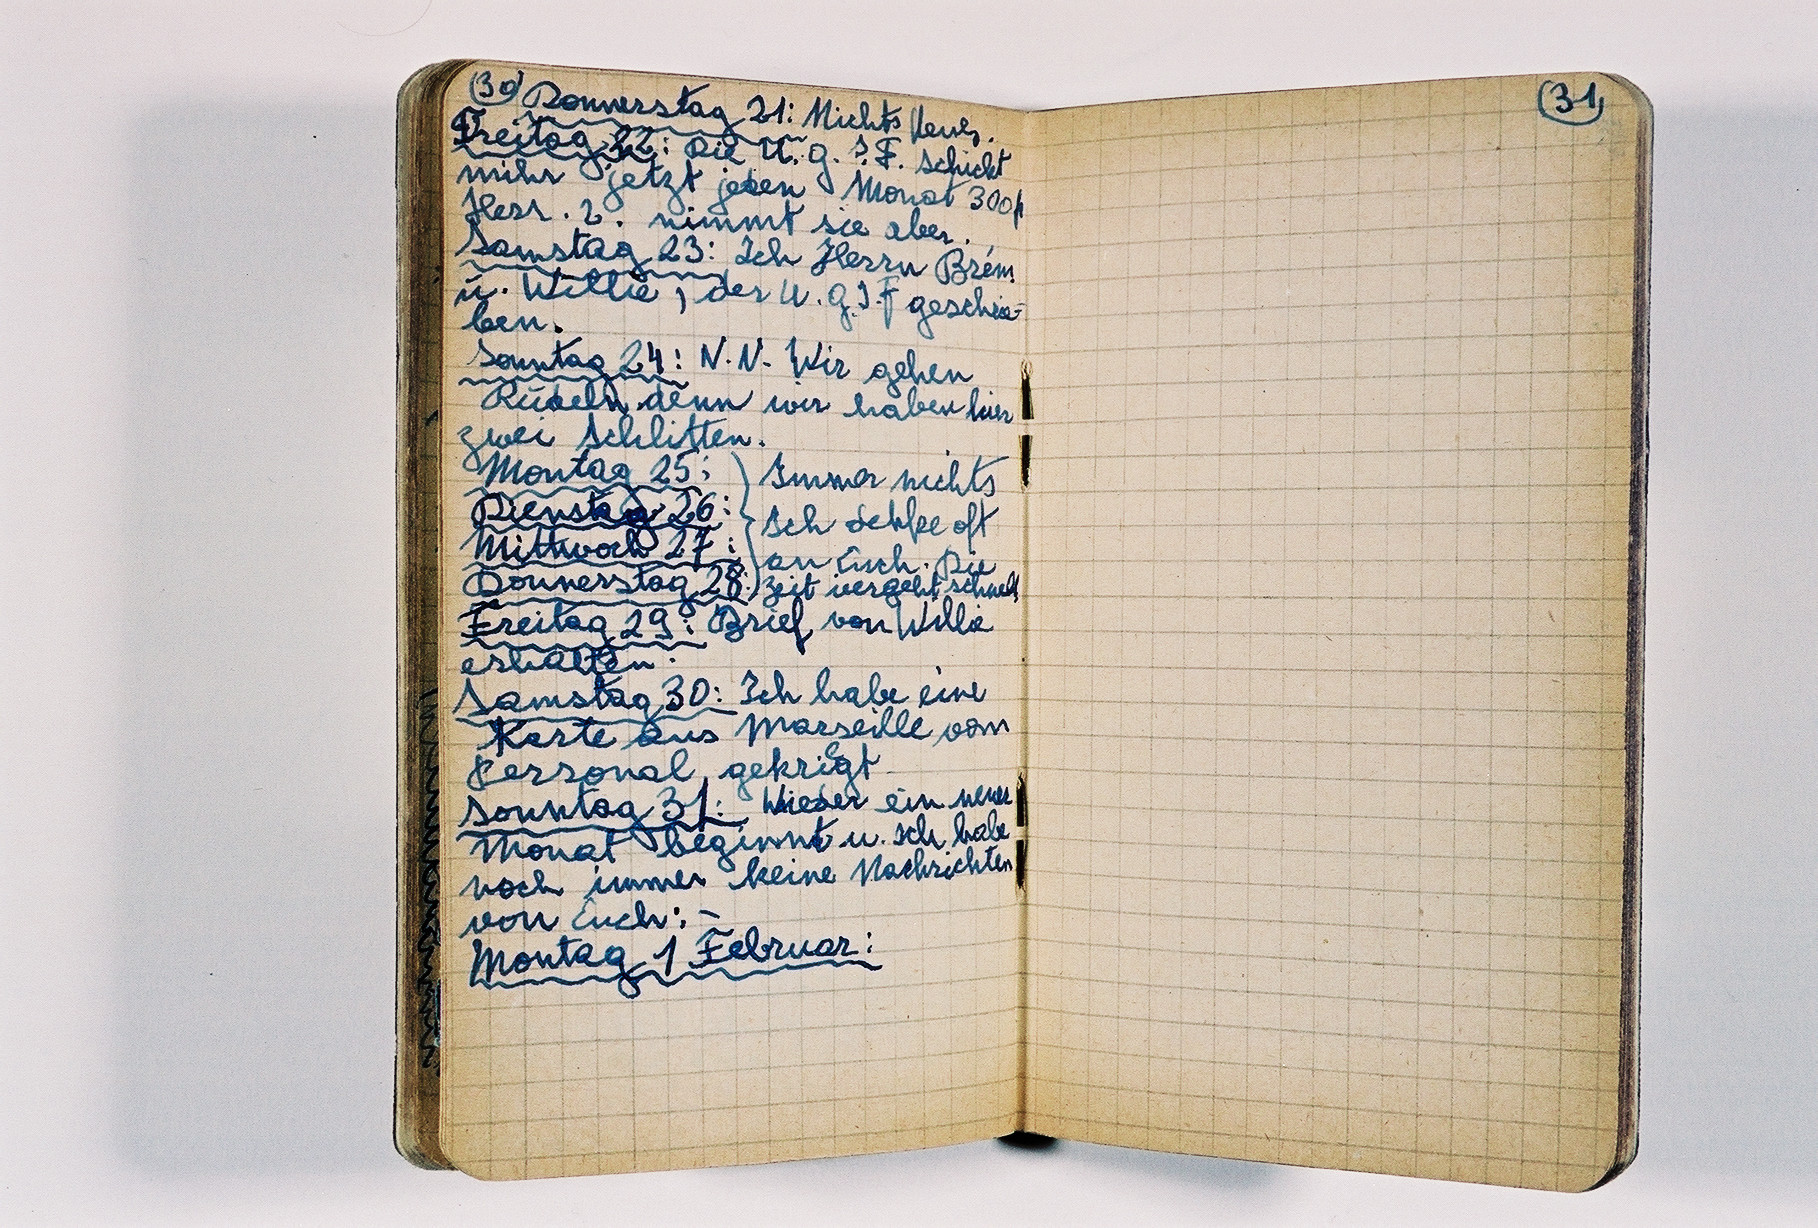 Private journal kept by Klaus Peter (later Pierre) Feigl, an Austrian/German Jewish refugee child living in France during World War II.